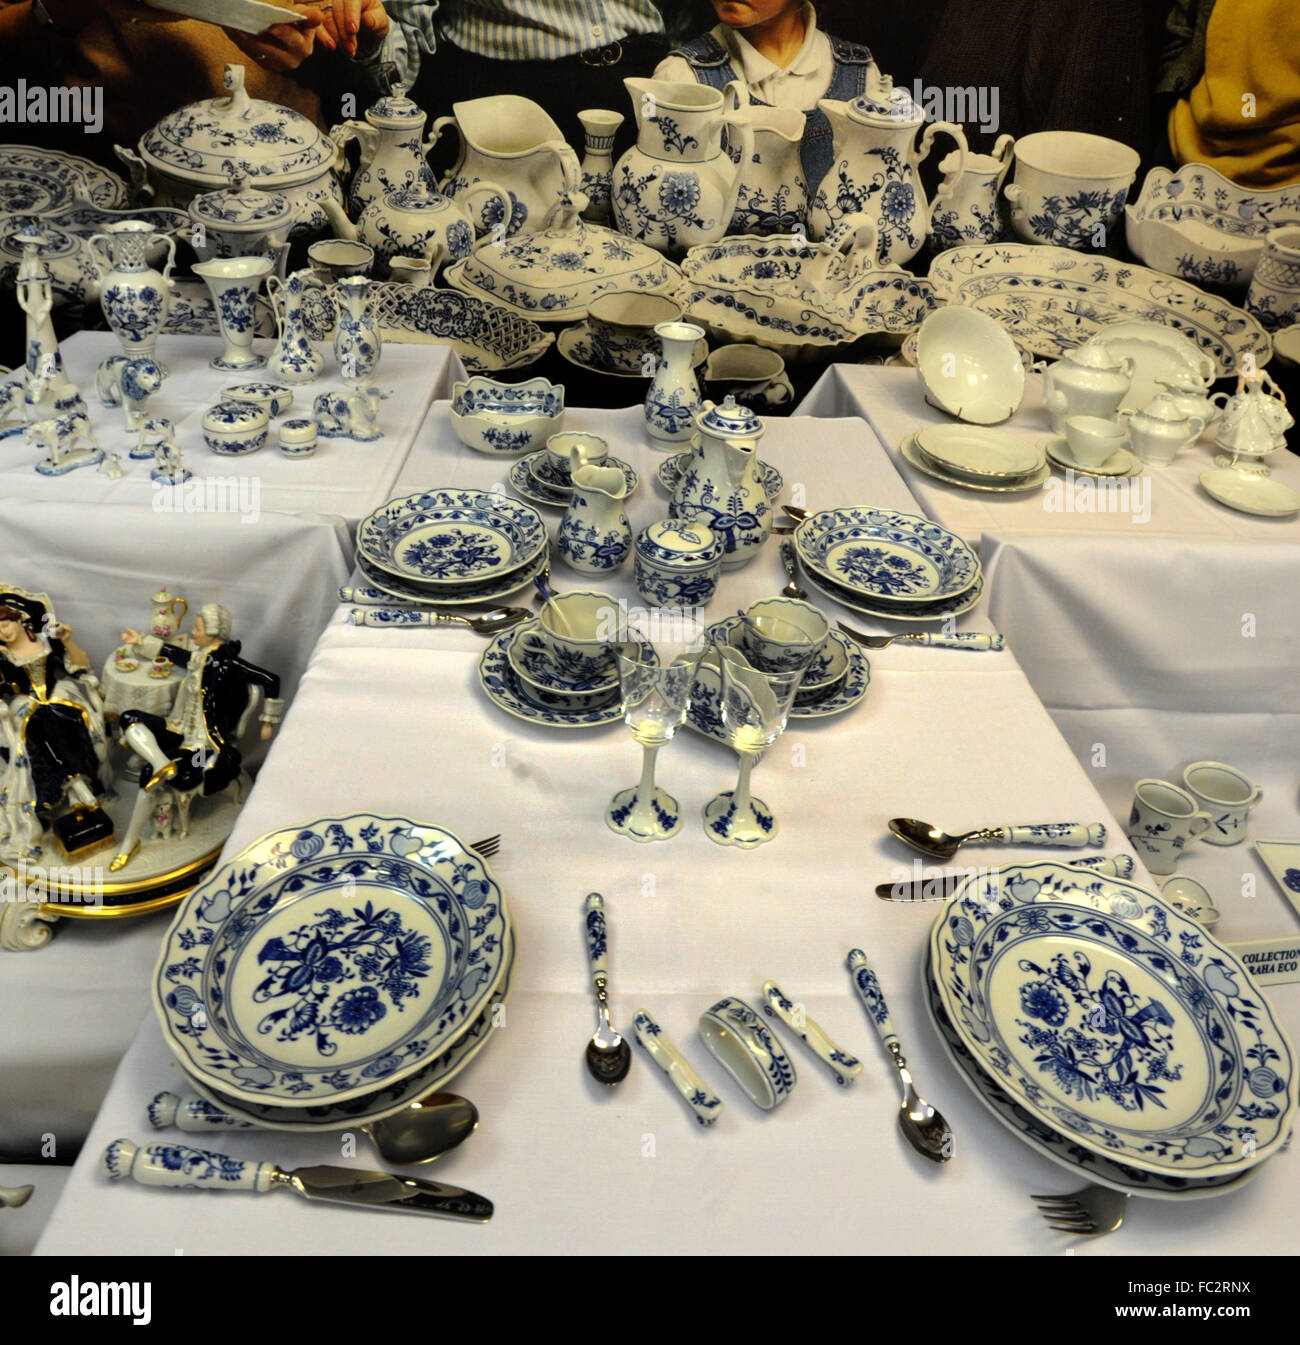 Dubi Czech Republic. 20th Jan 2016. Blue Onion Porcelain from company Cesky porcelan were presented prior to the International Frankfurt Fair Ambiente in ... & Dubi Czech Republic. 20th Jan 2016. Blue Onion Porcelain from ...